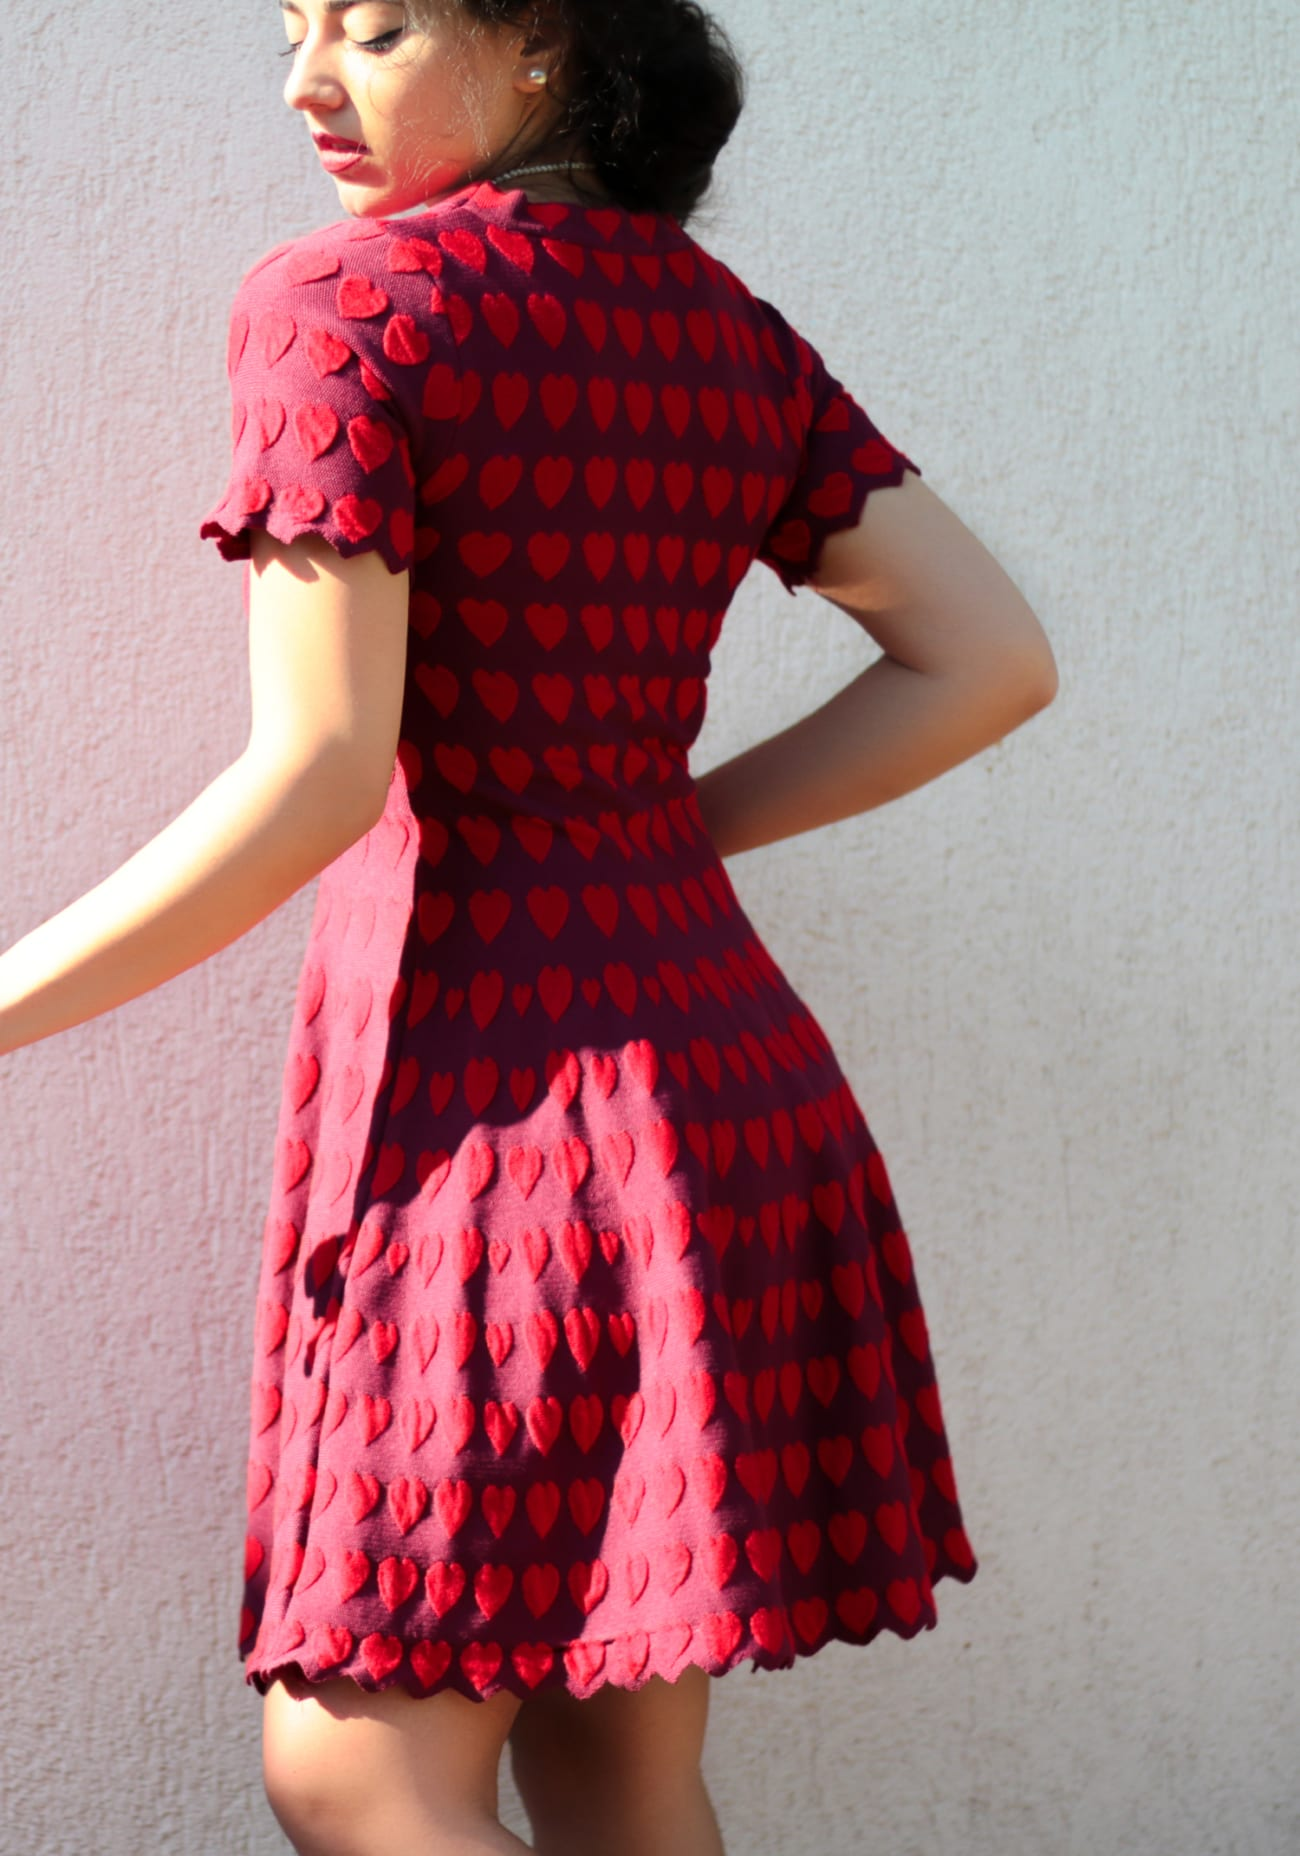 vintage comic book red hearts dress topfashion.com.ro old style pearls roxi rose (10)